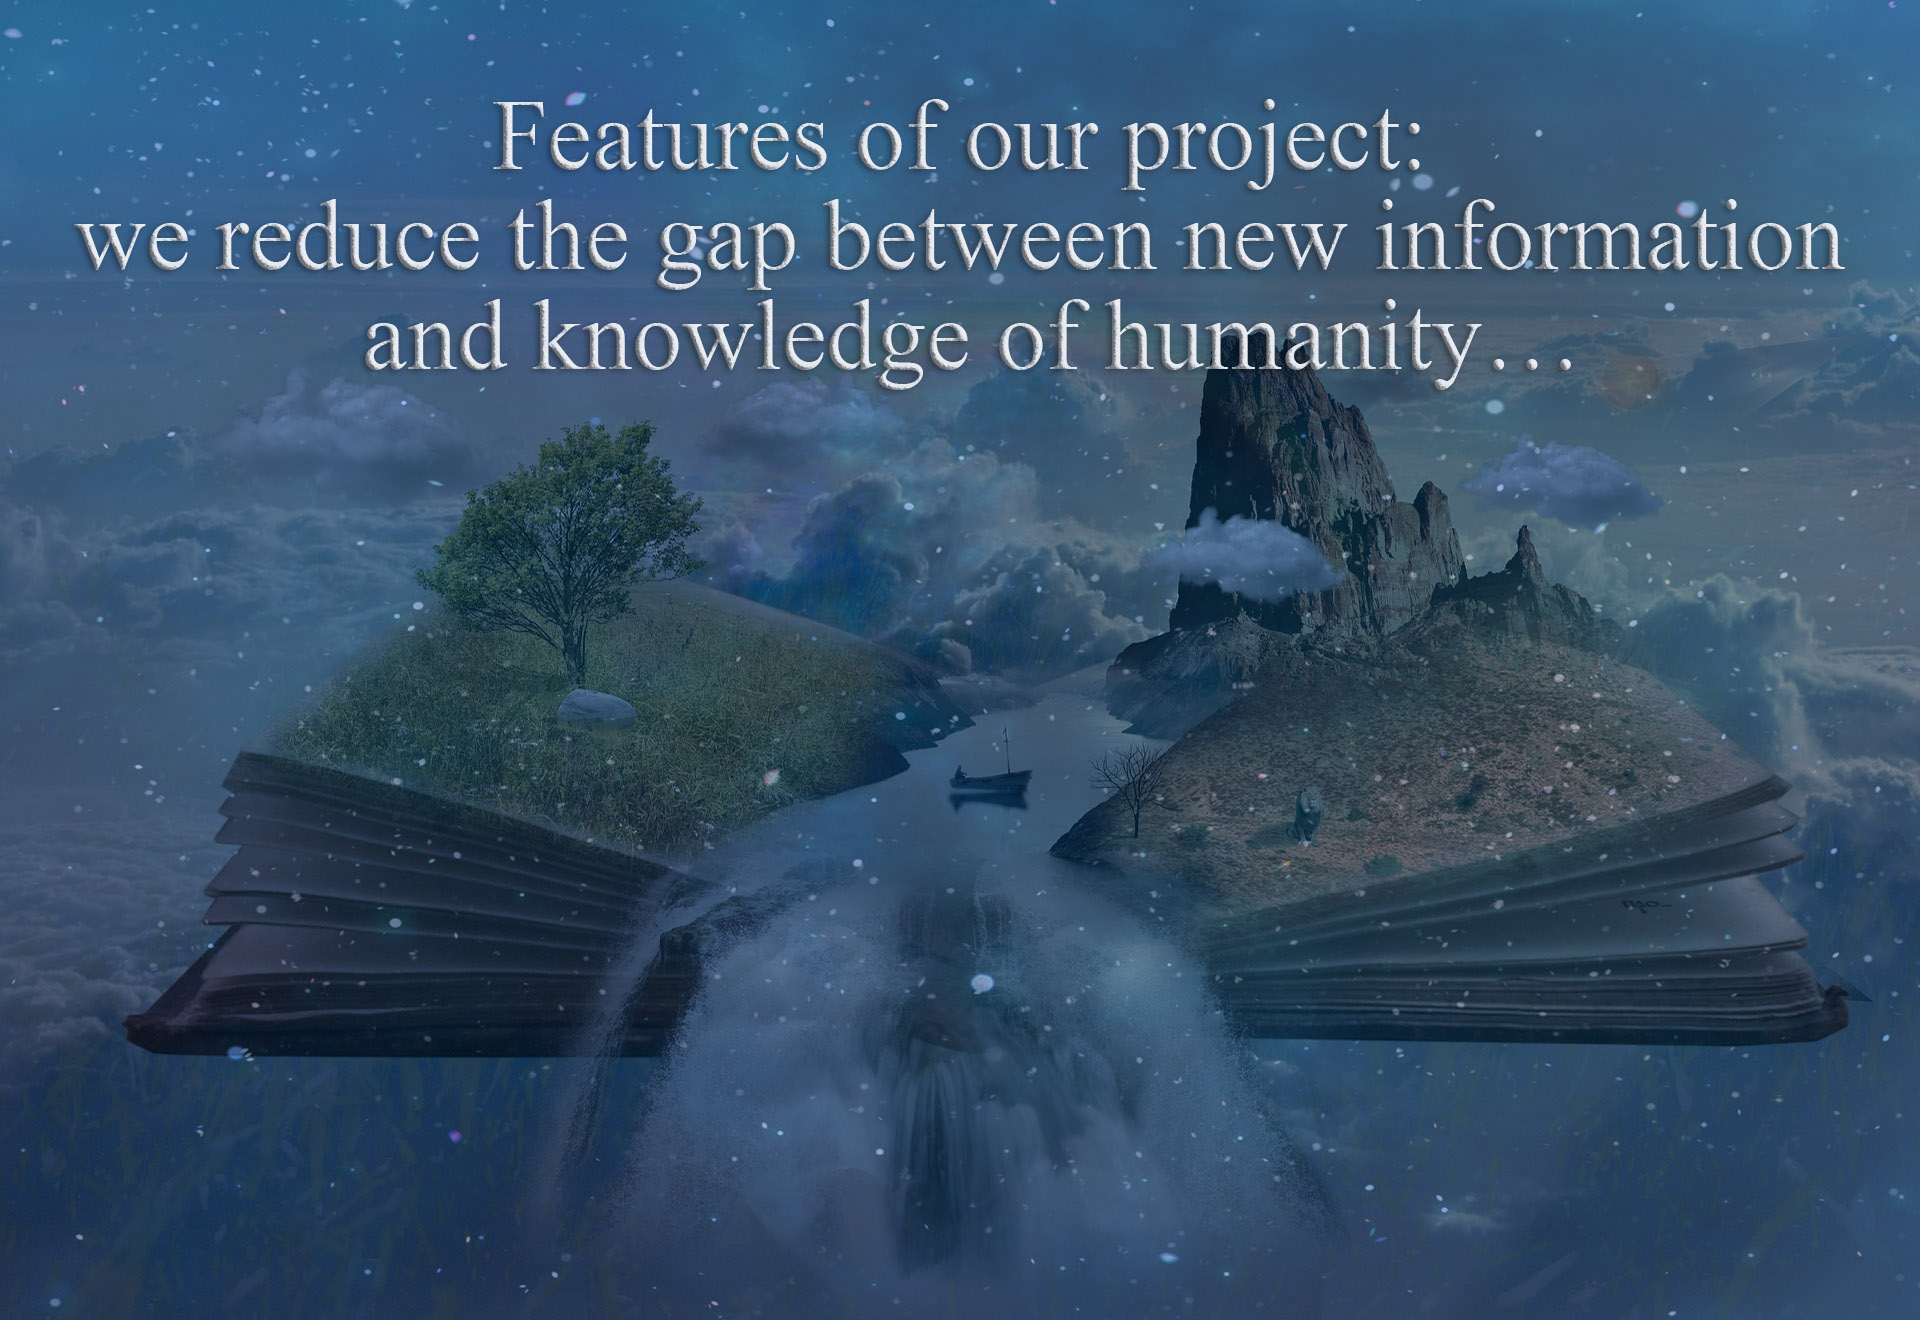 PROJECT FEATURES PROJECT FANTASY